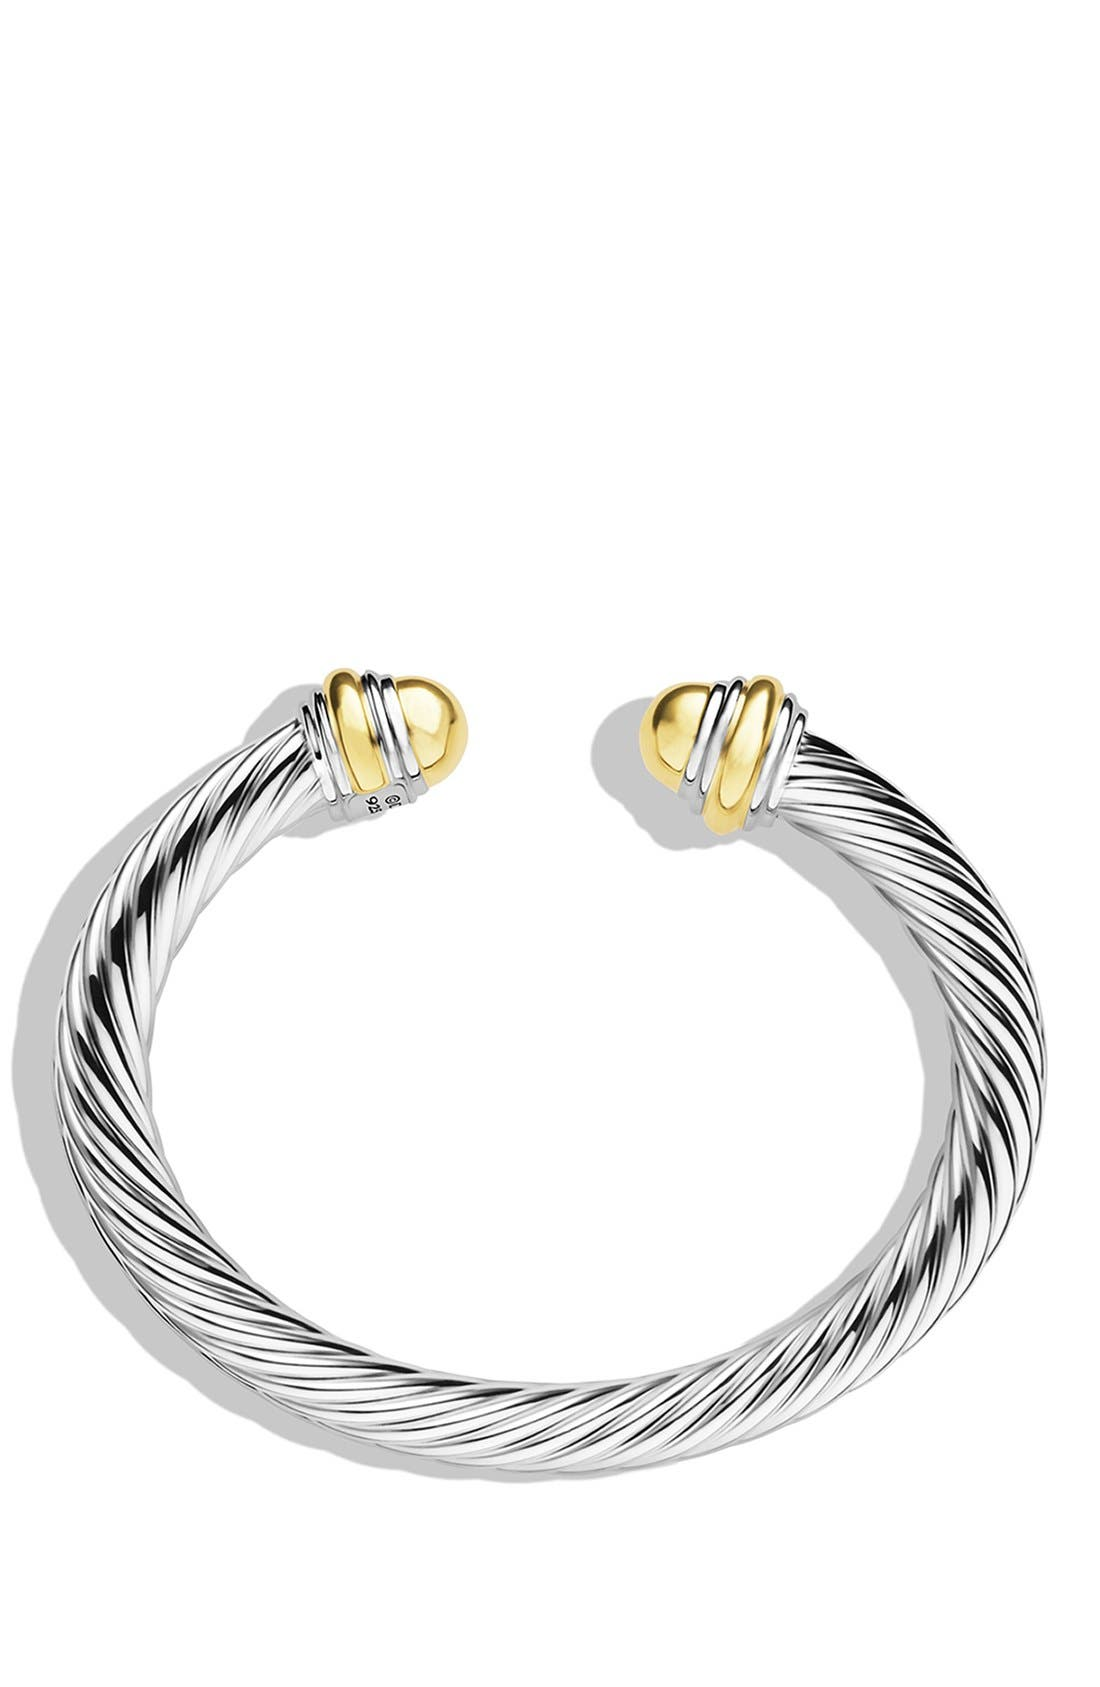 Cable Classics Bracelet with 14K Gold, 7mm,                             Alternate thumbnail 2, color,                             Gold Dome